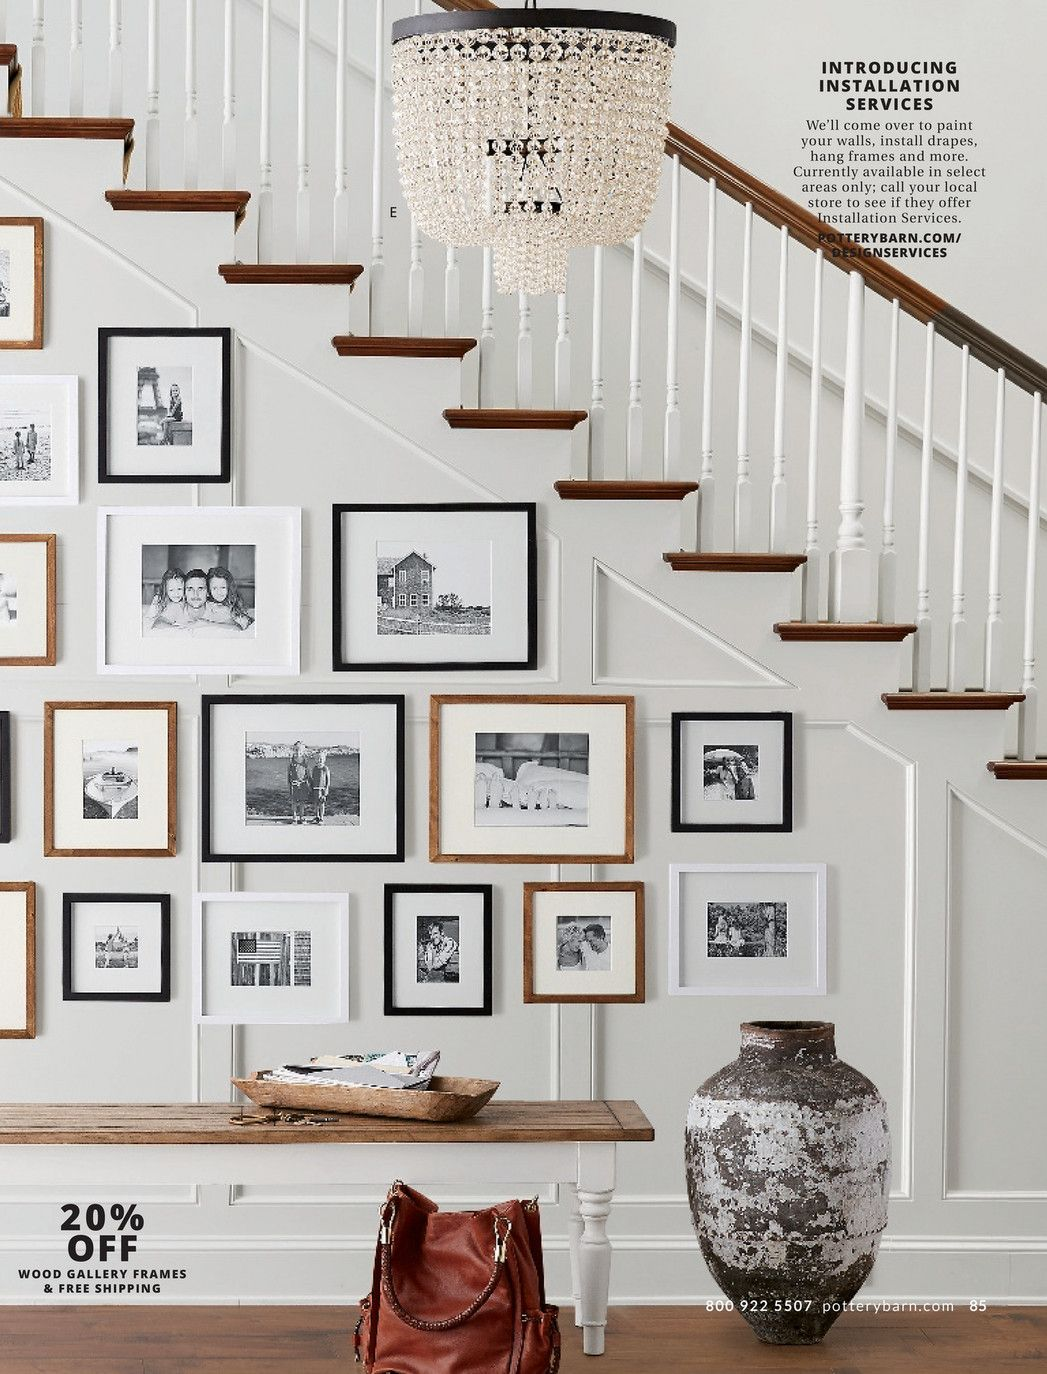 Pottery Barn - Fall 2016 Catalog - Page 84-85 | Chip & Joanna Gaines ...